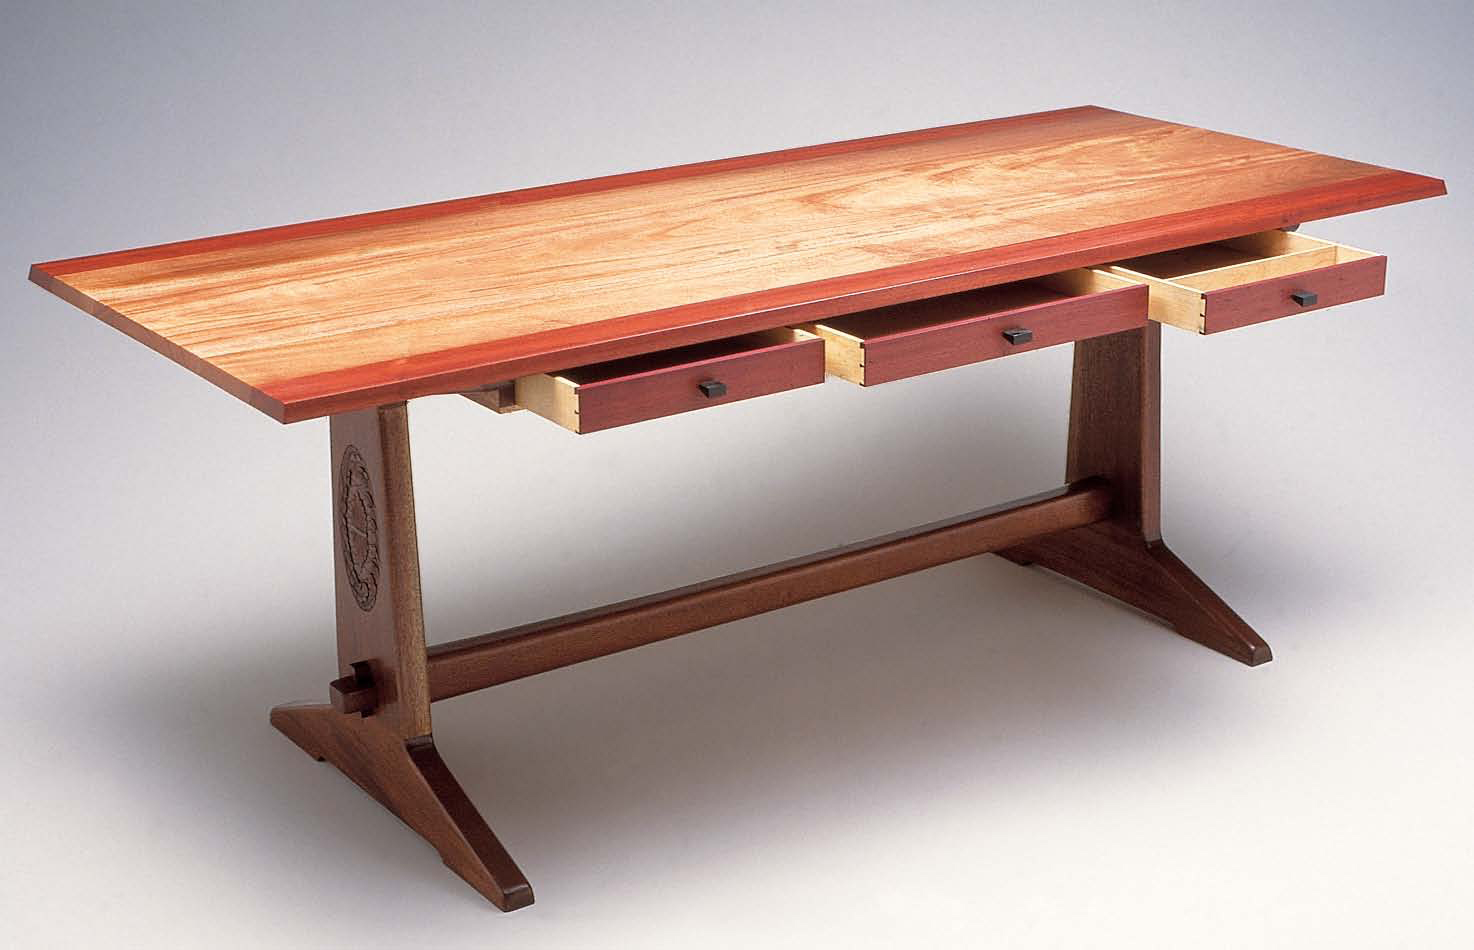 ... Ultimate Guide to Wood Furniture Design - Popular Woodworking Magazine